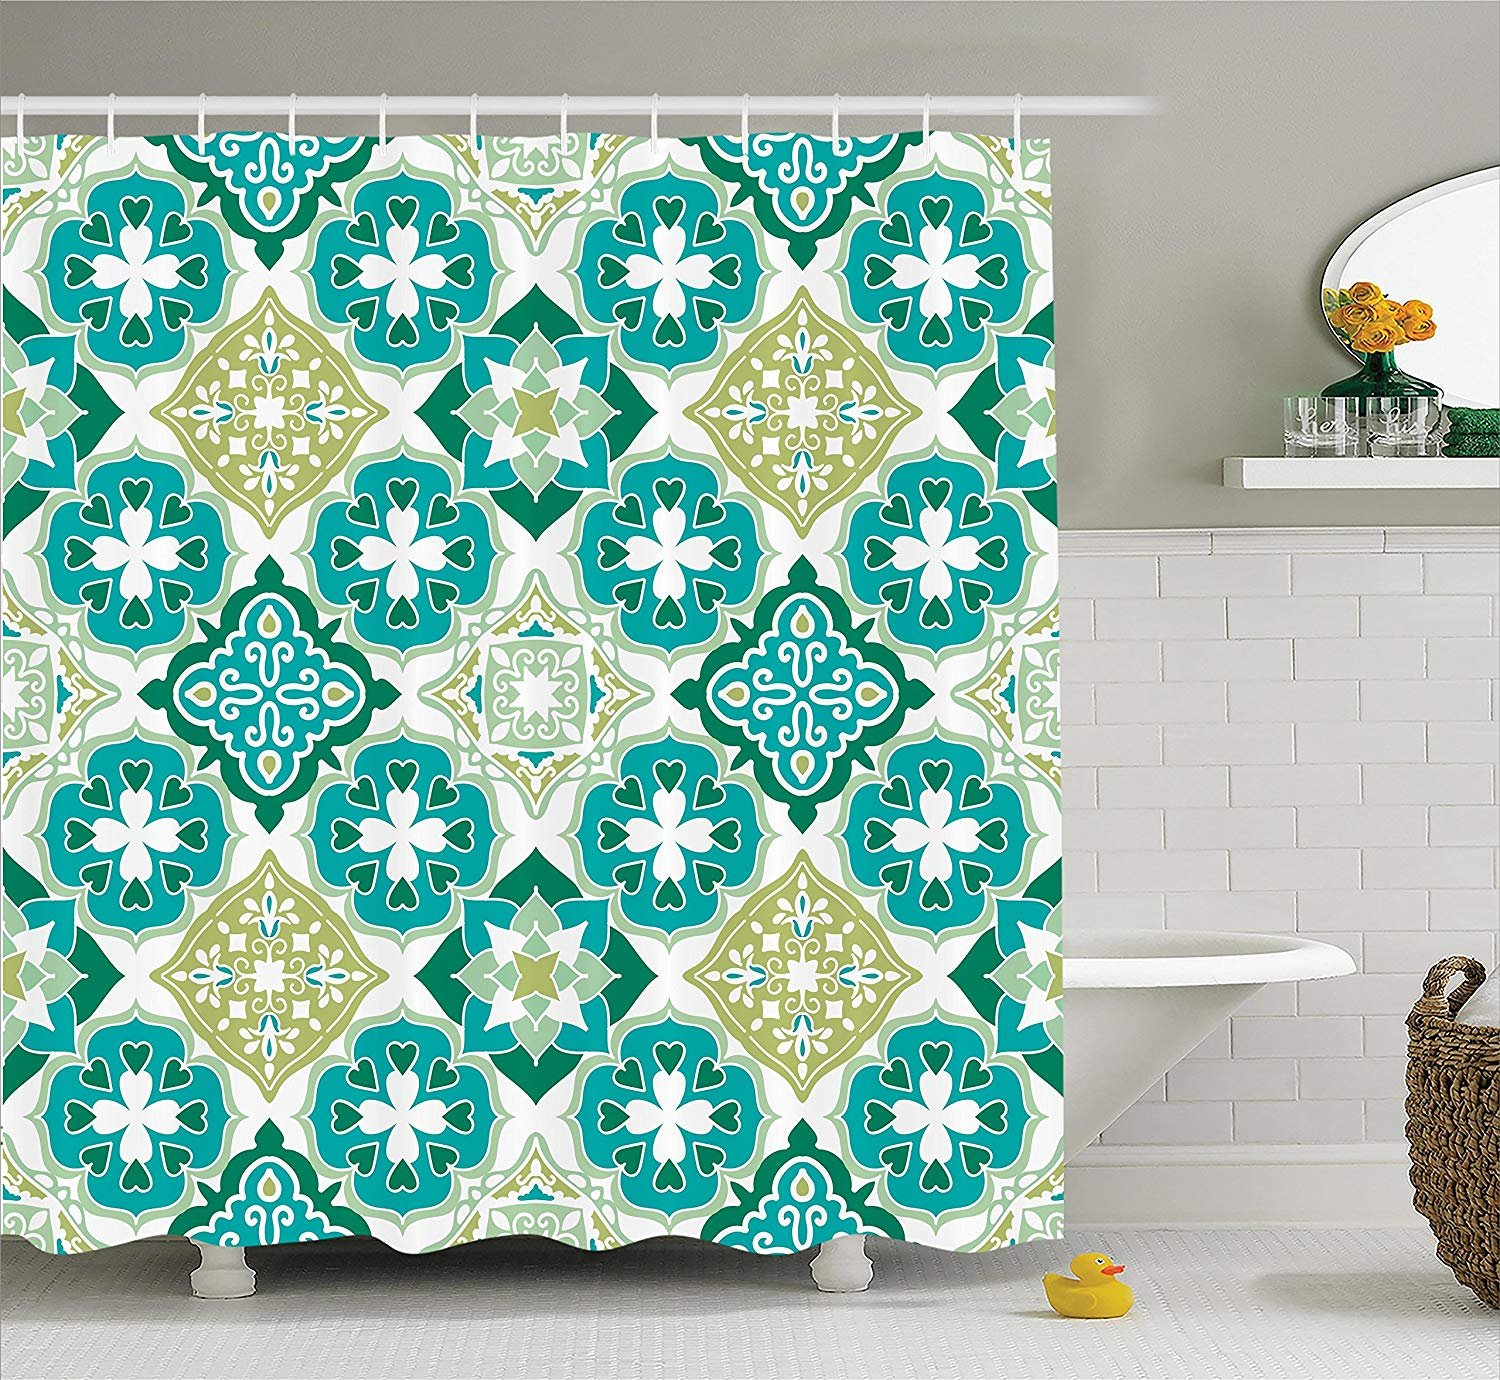 Printing Moroccan Decor Shower Curtain Set, Colored Tiled Pattern with Geometrical Diagonal and Triangle Forms Oldest Craft, Bathroom Fabric Curtains Bath Waterproof, 72 x 84 Inches Green Teal